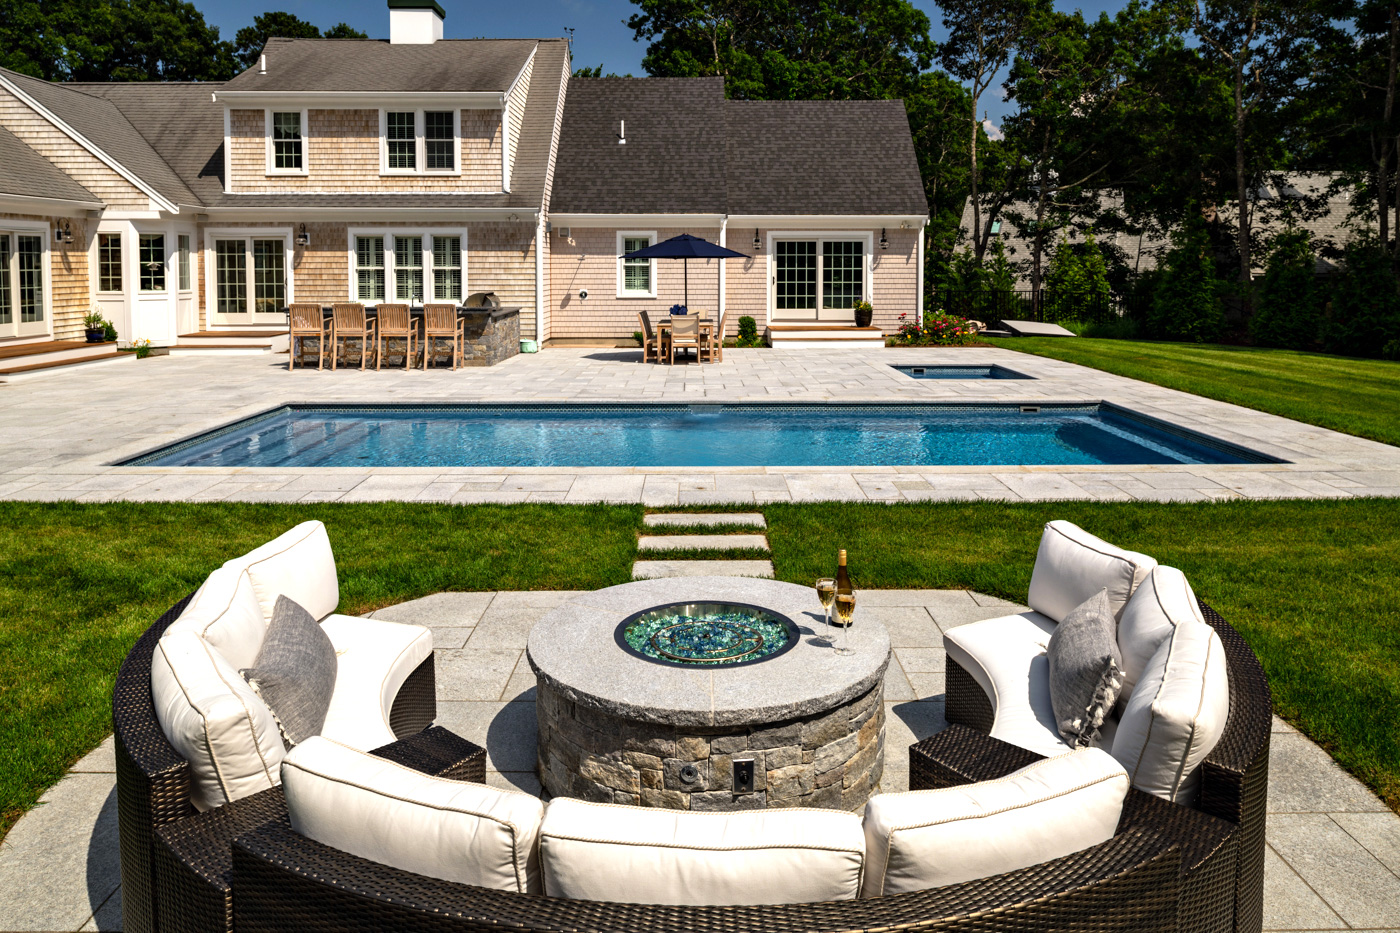 Pool and outdoor lounge area created by McPhee associates